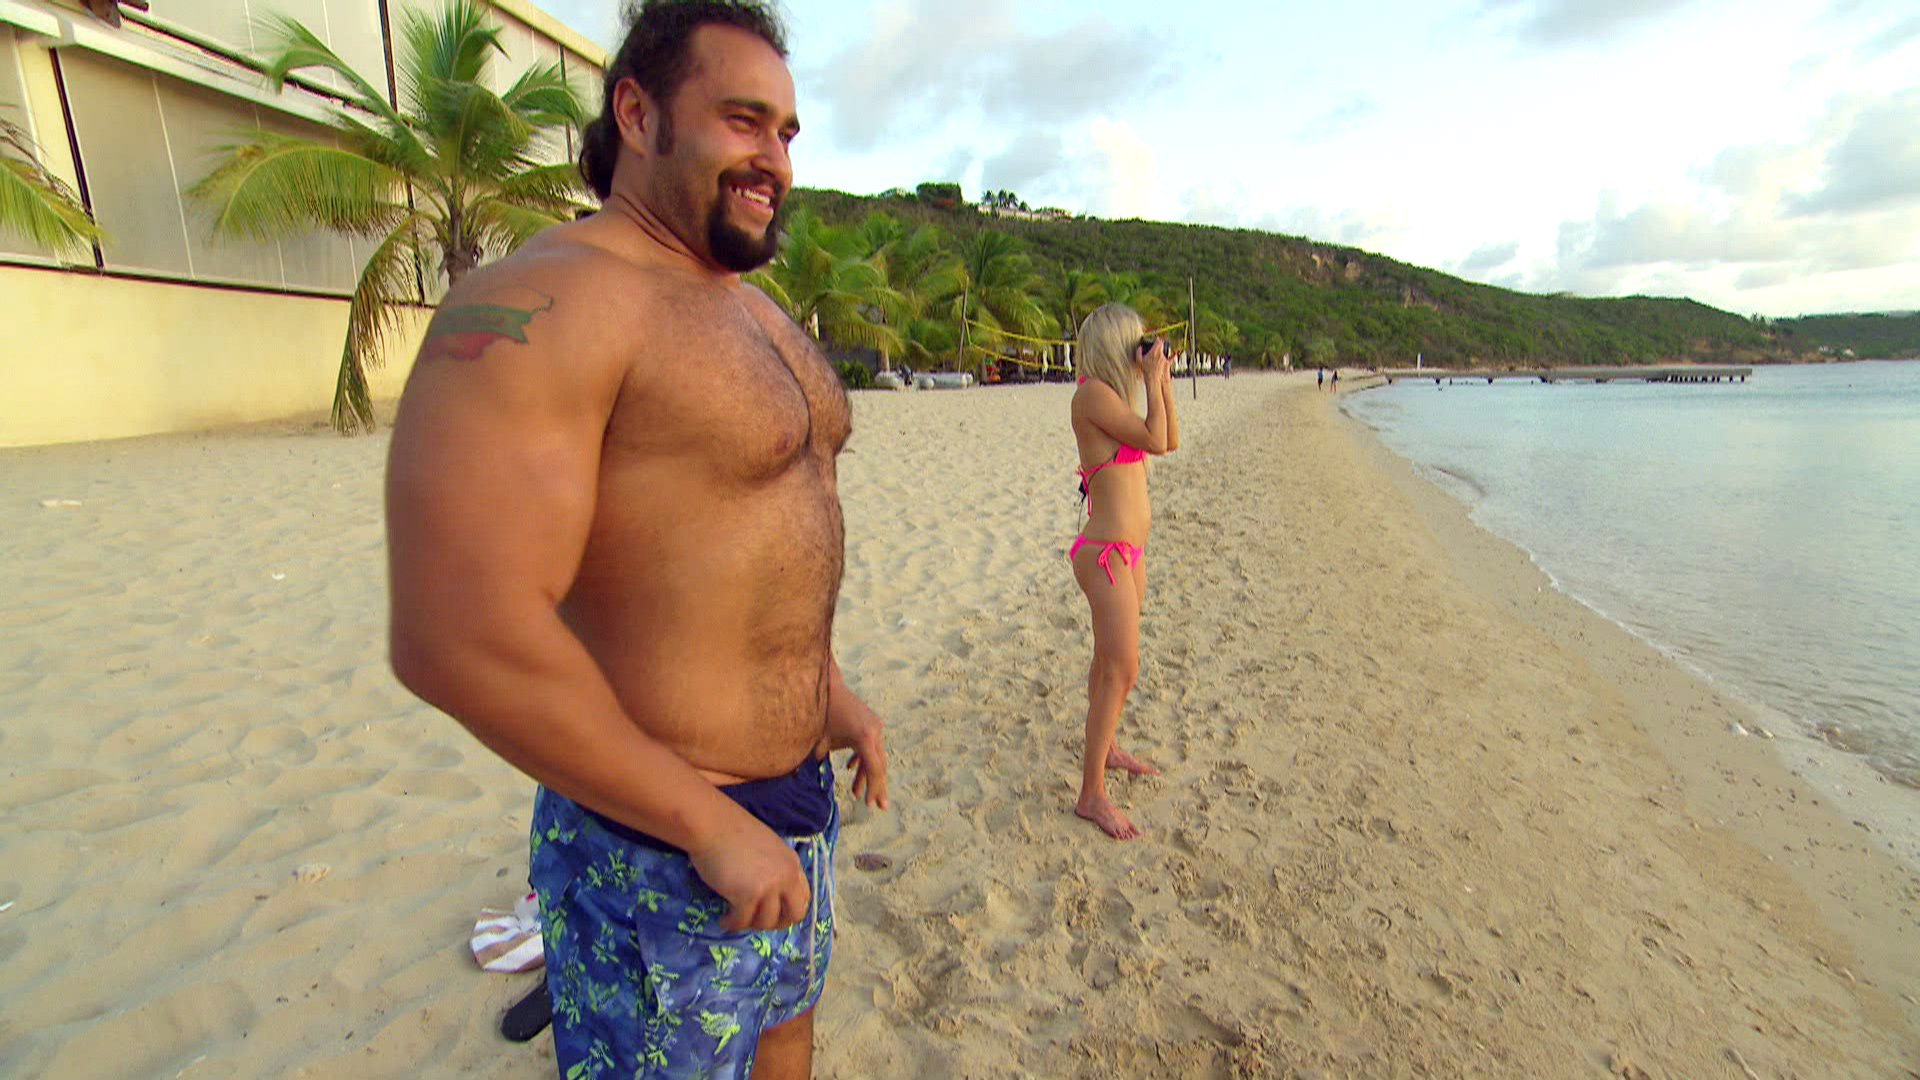 Lana, Rusev and Renee Young arrive in Anguilla for charity work, where Renee third-wheels and The Ravishing Russian takes a ton of pictures.